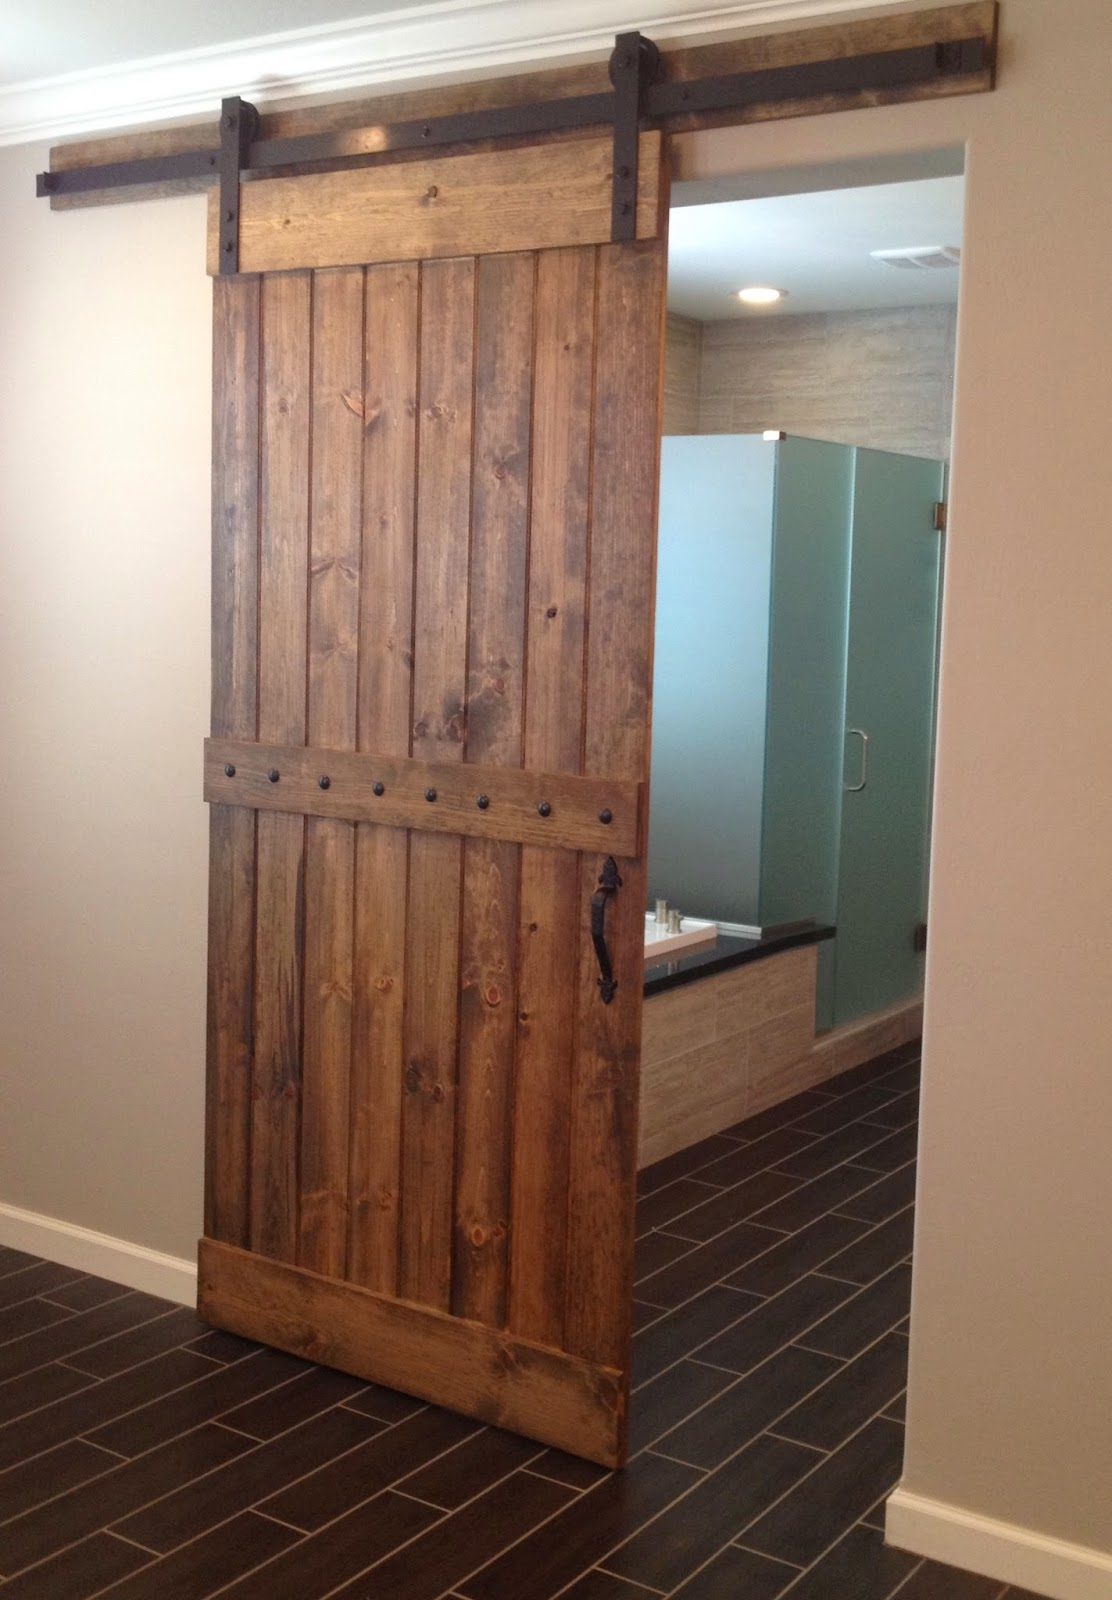 Sliding Barn Style Door Bathroom Picknotty alder barn door styles new house walls trim ceilings